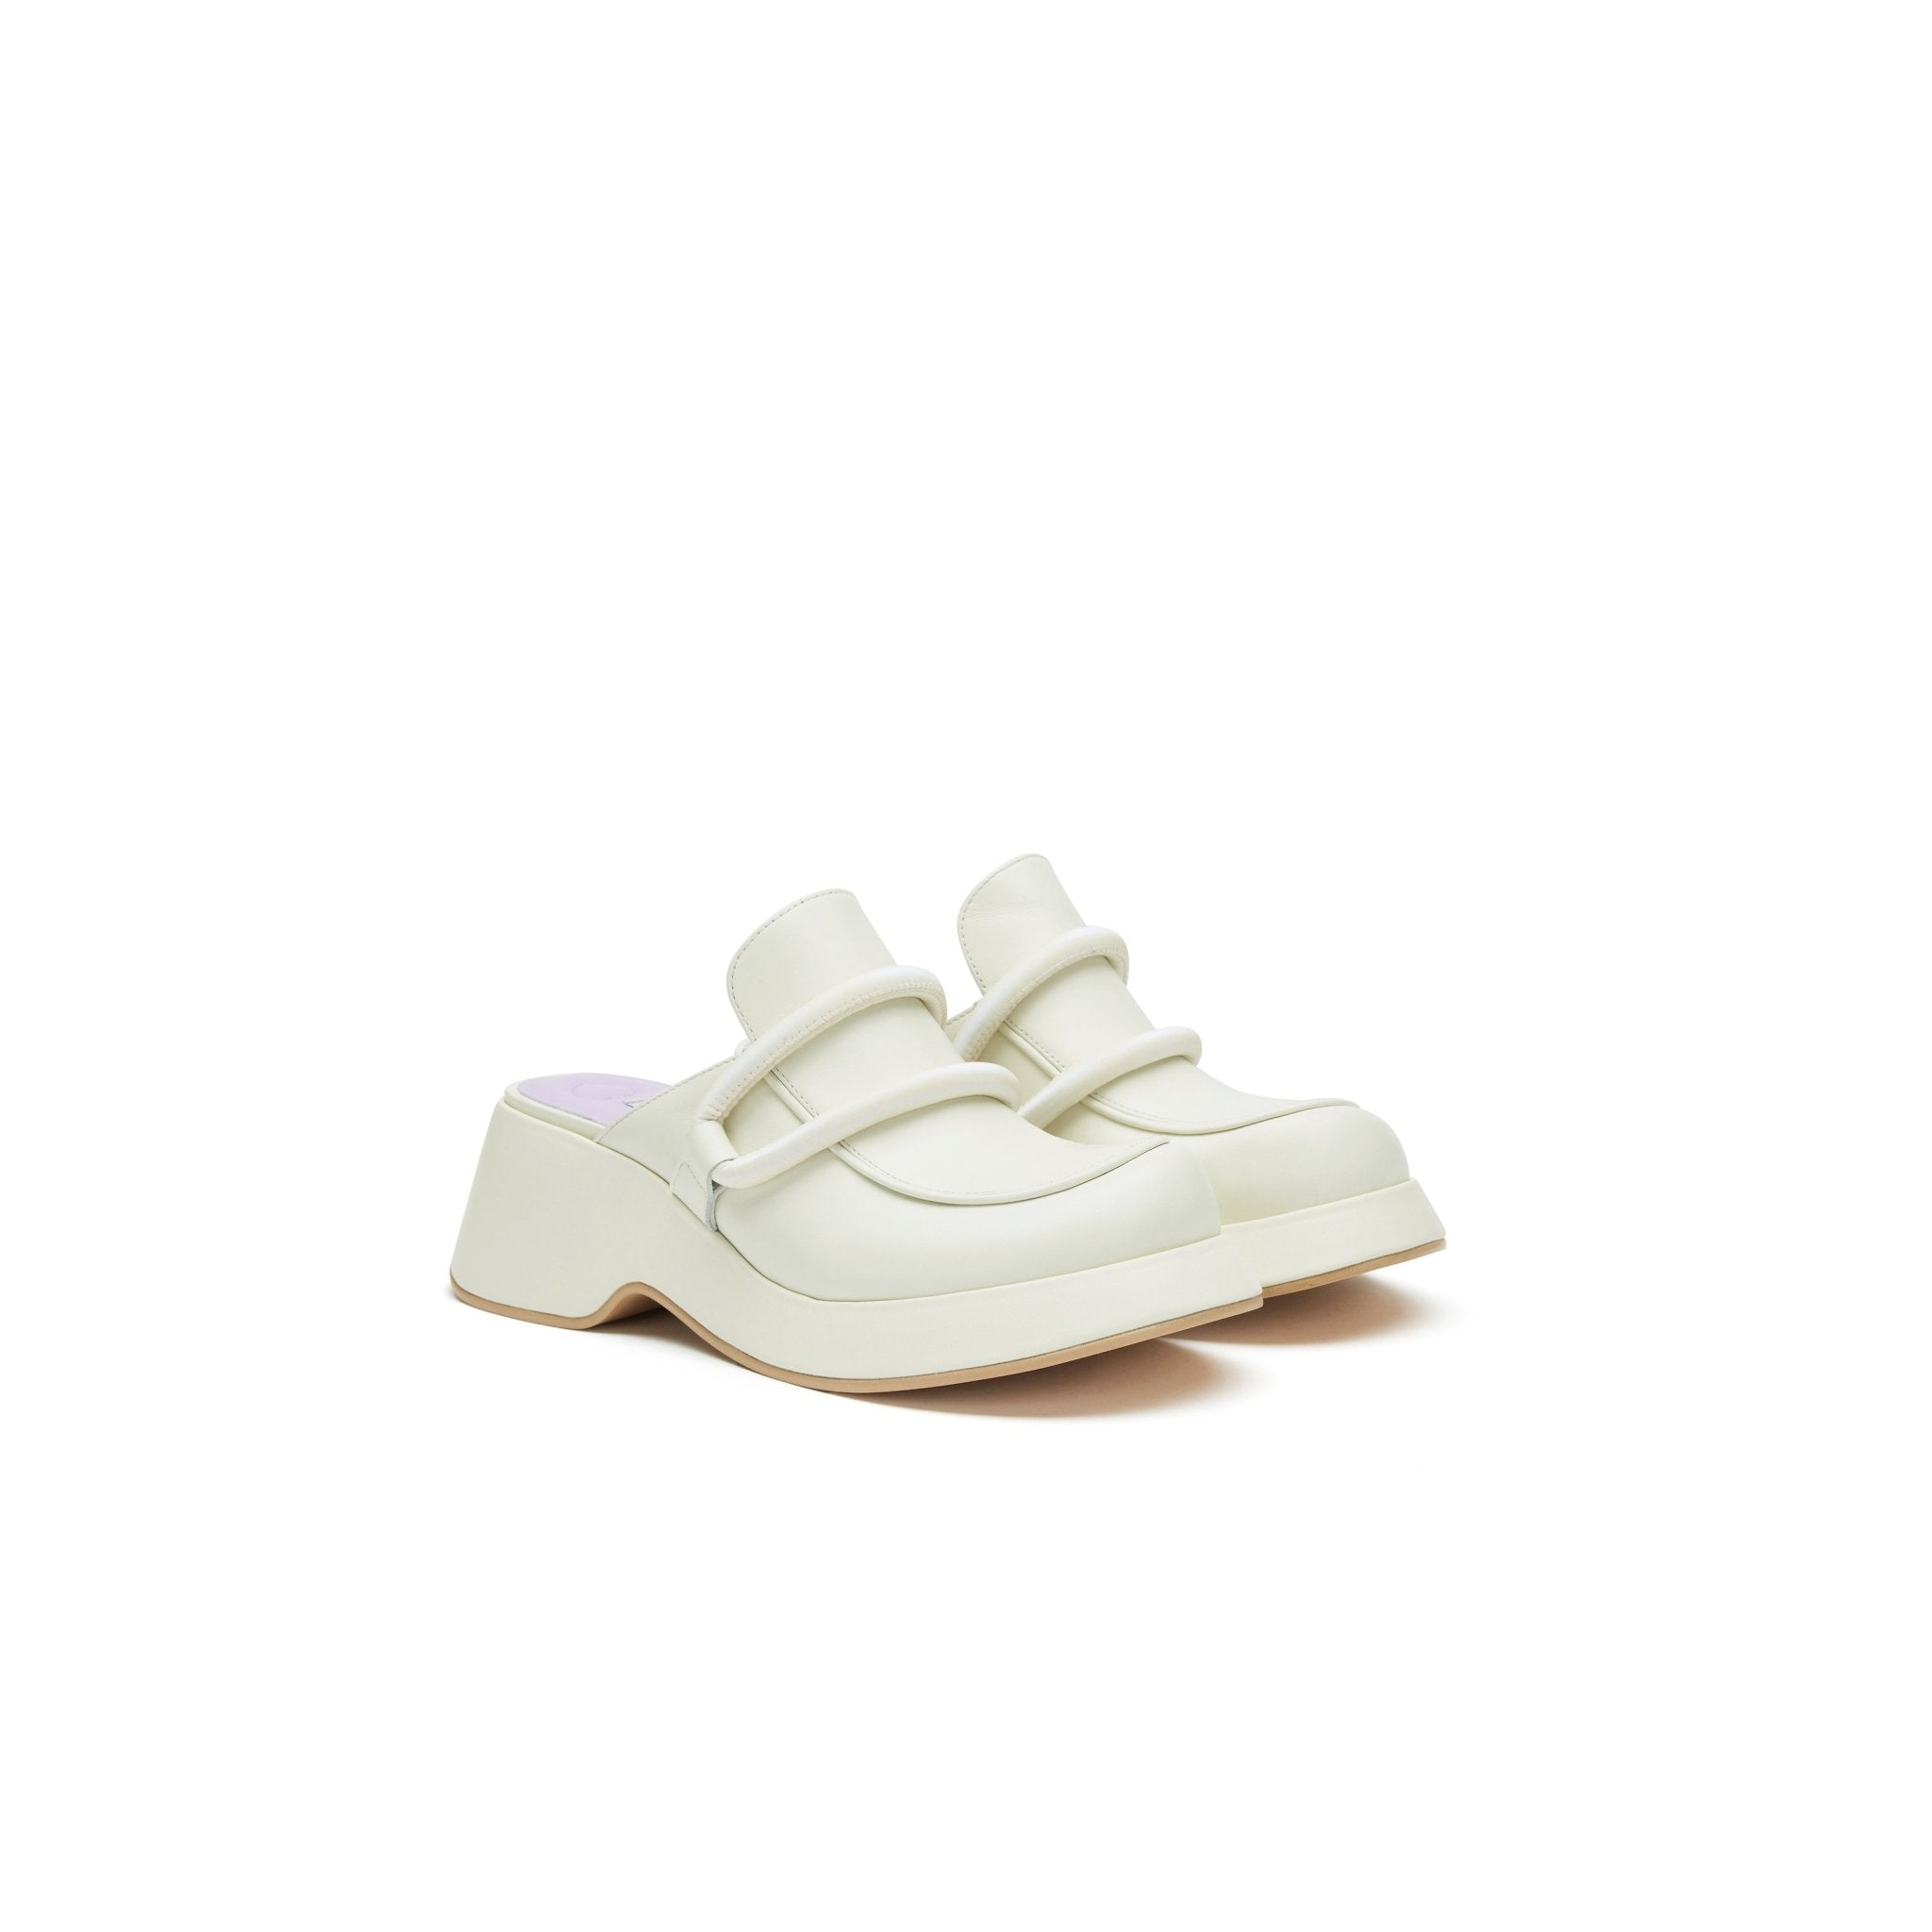 LOST IN ECHO White Platform Loafers | MADA IN CHINA